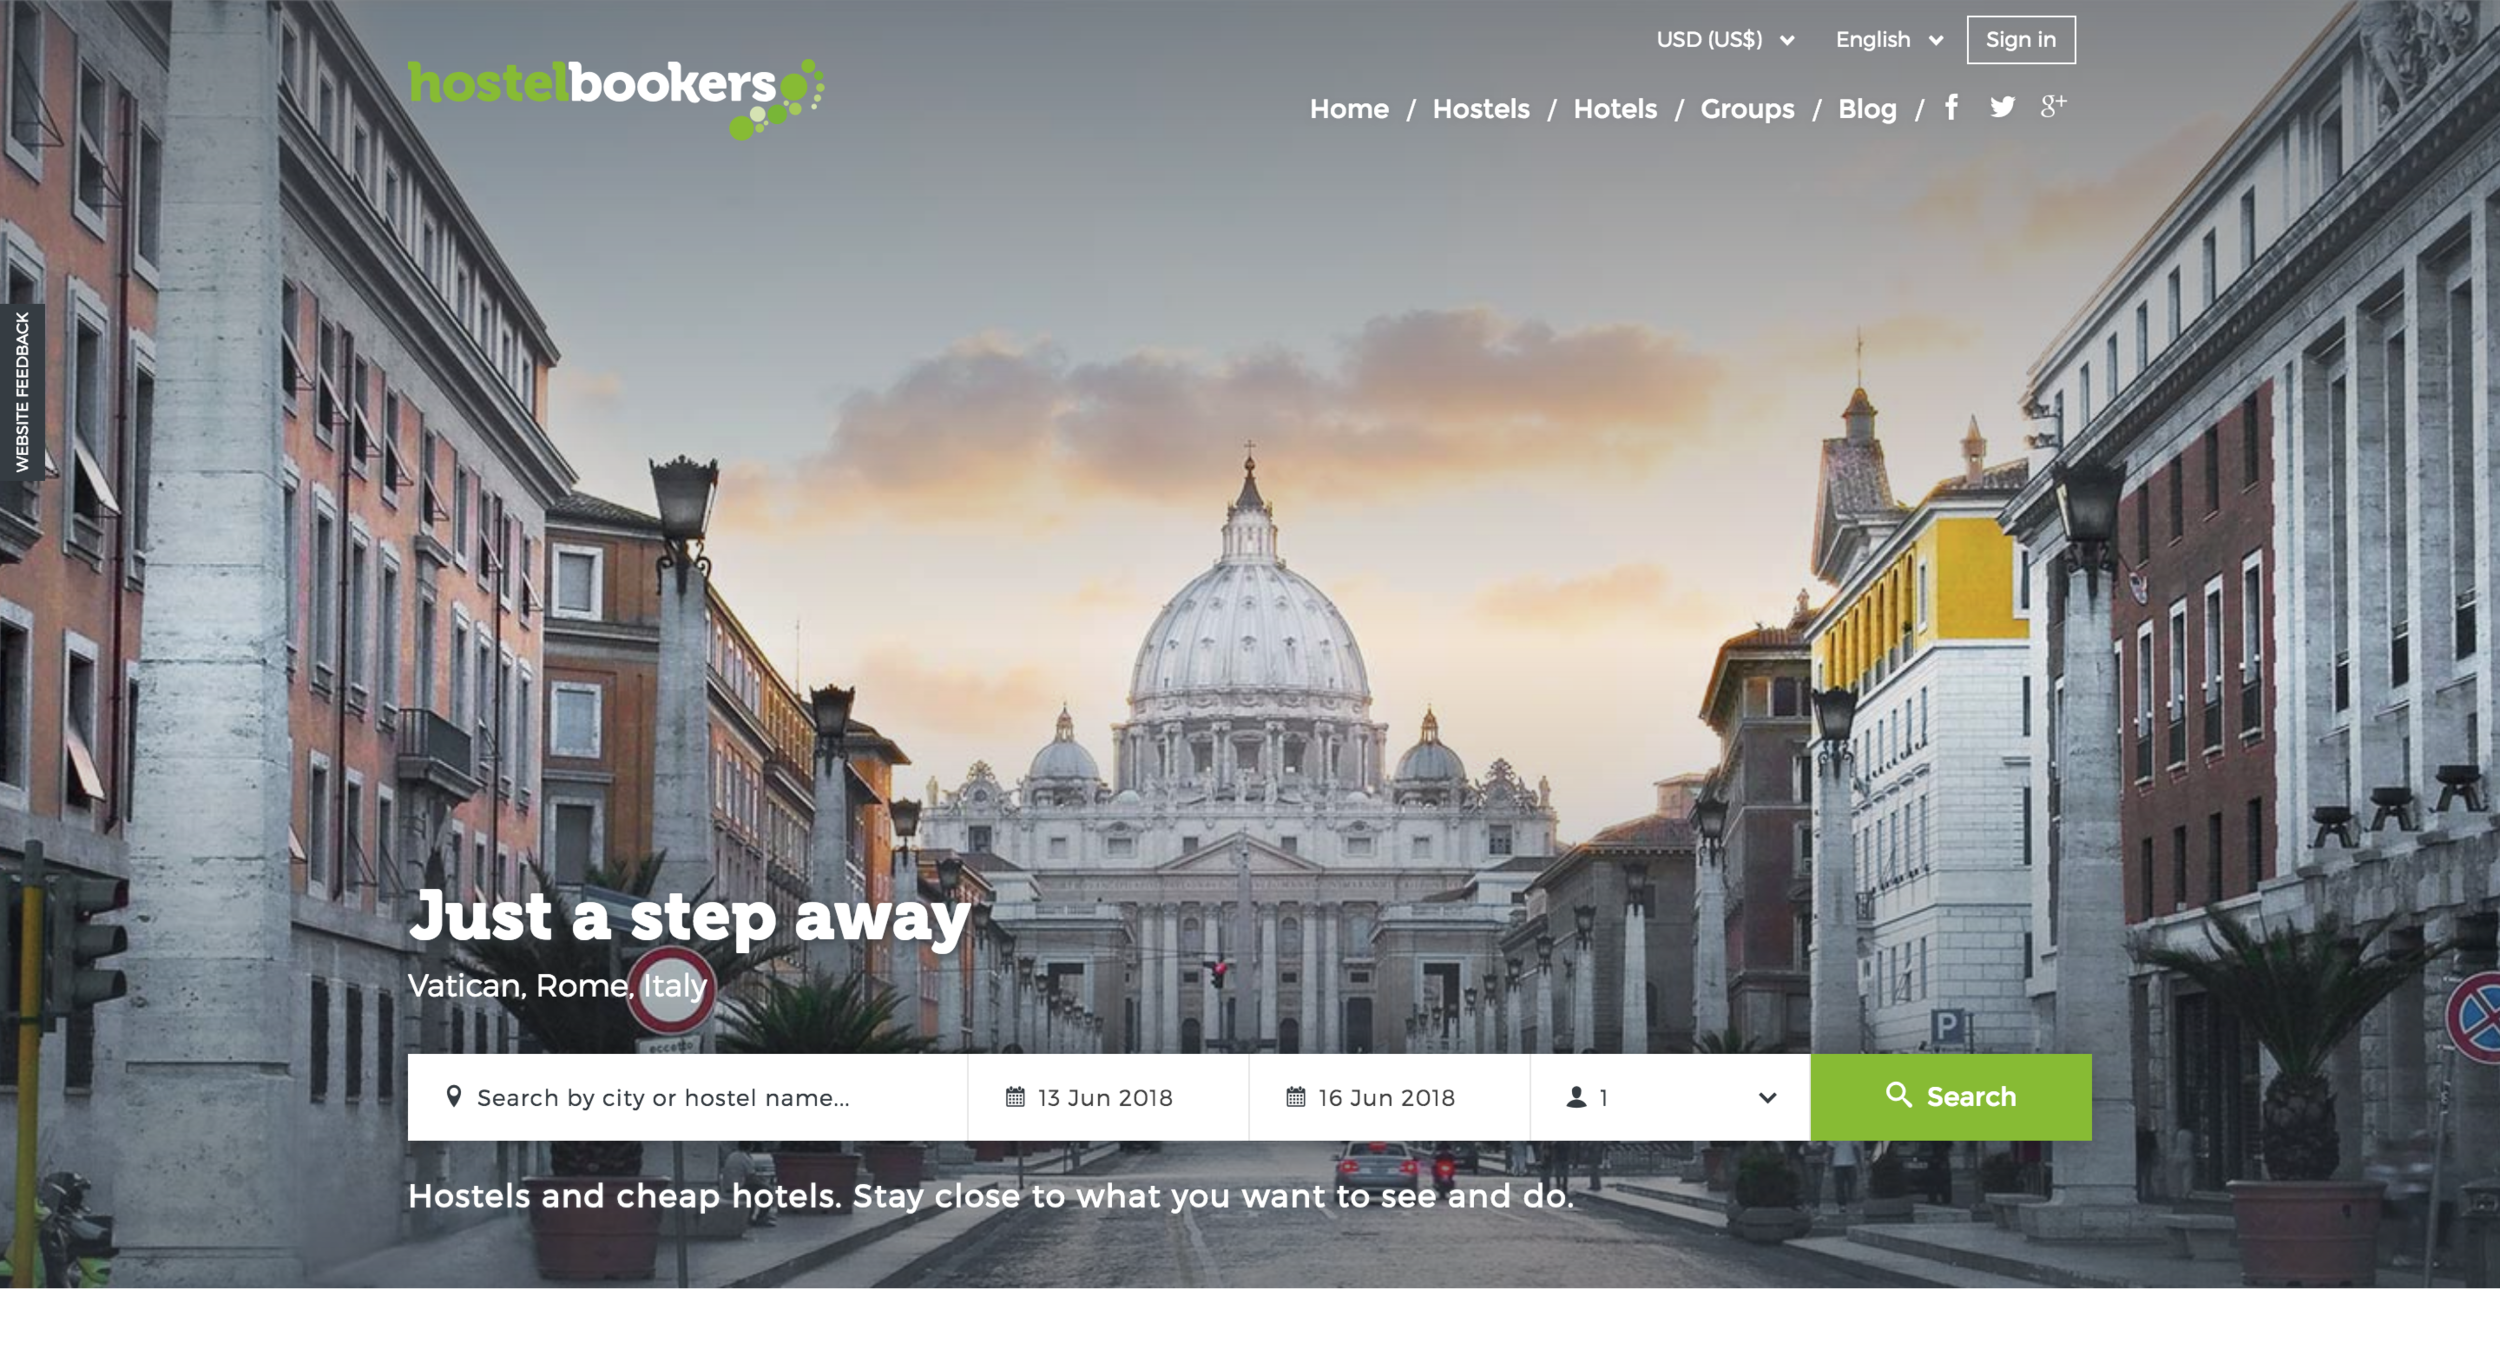 HostelBookers Home Page: